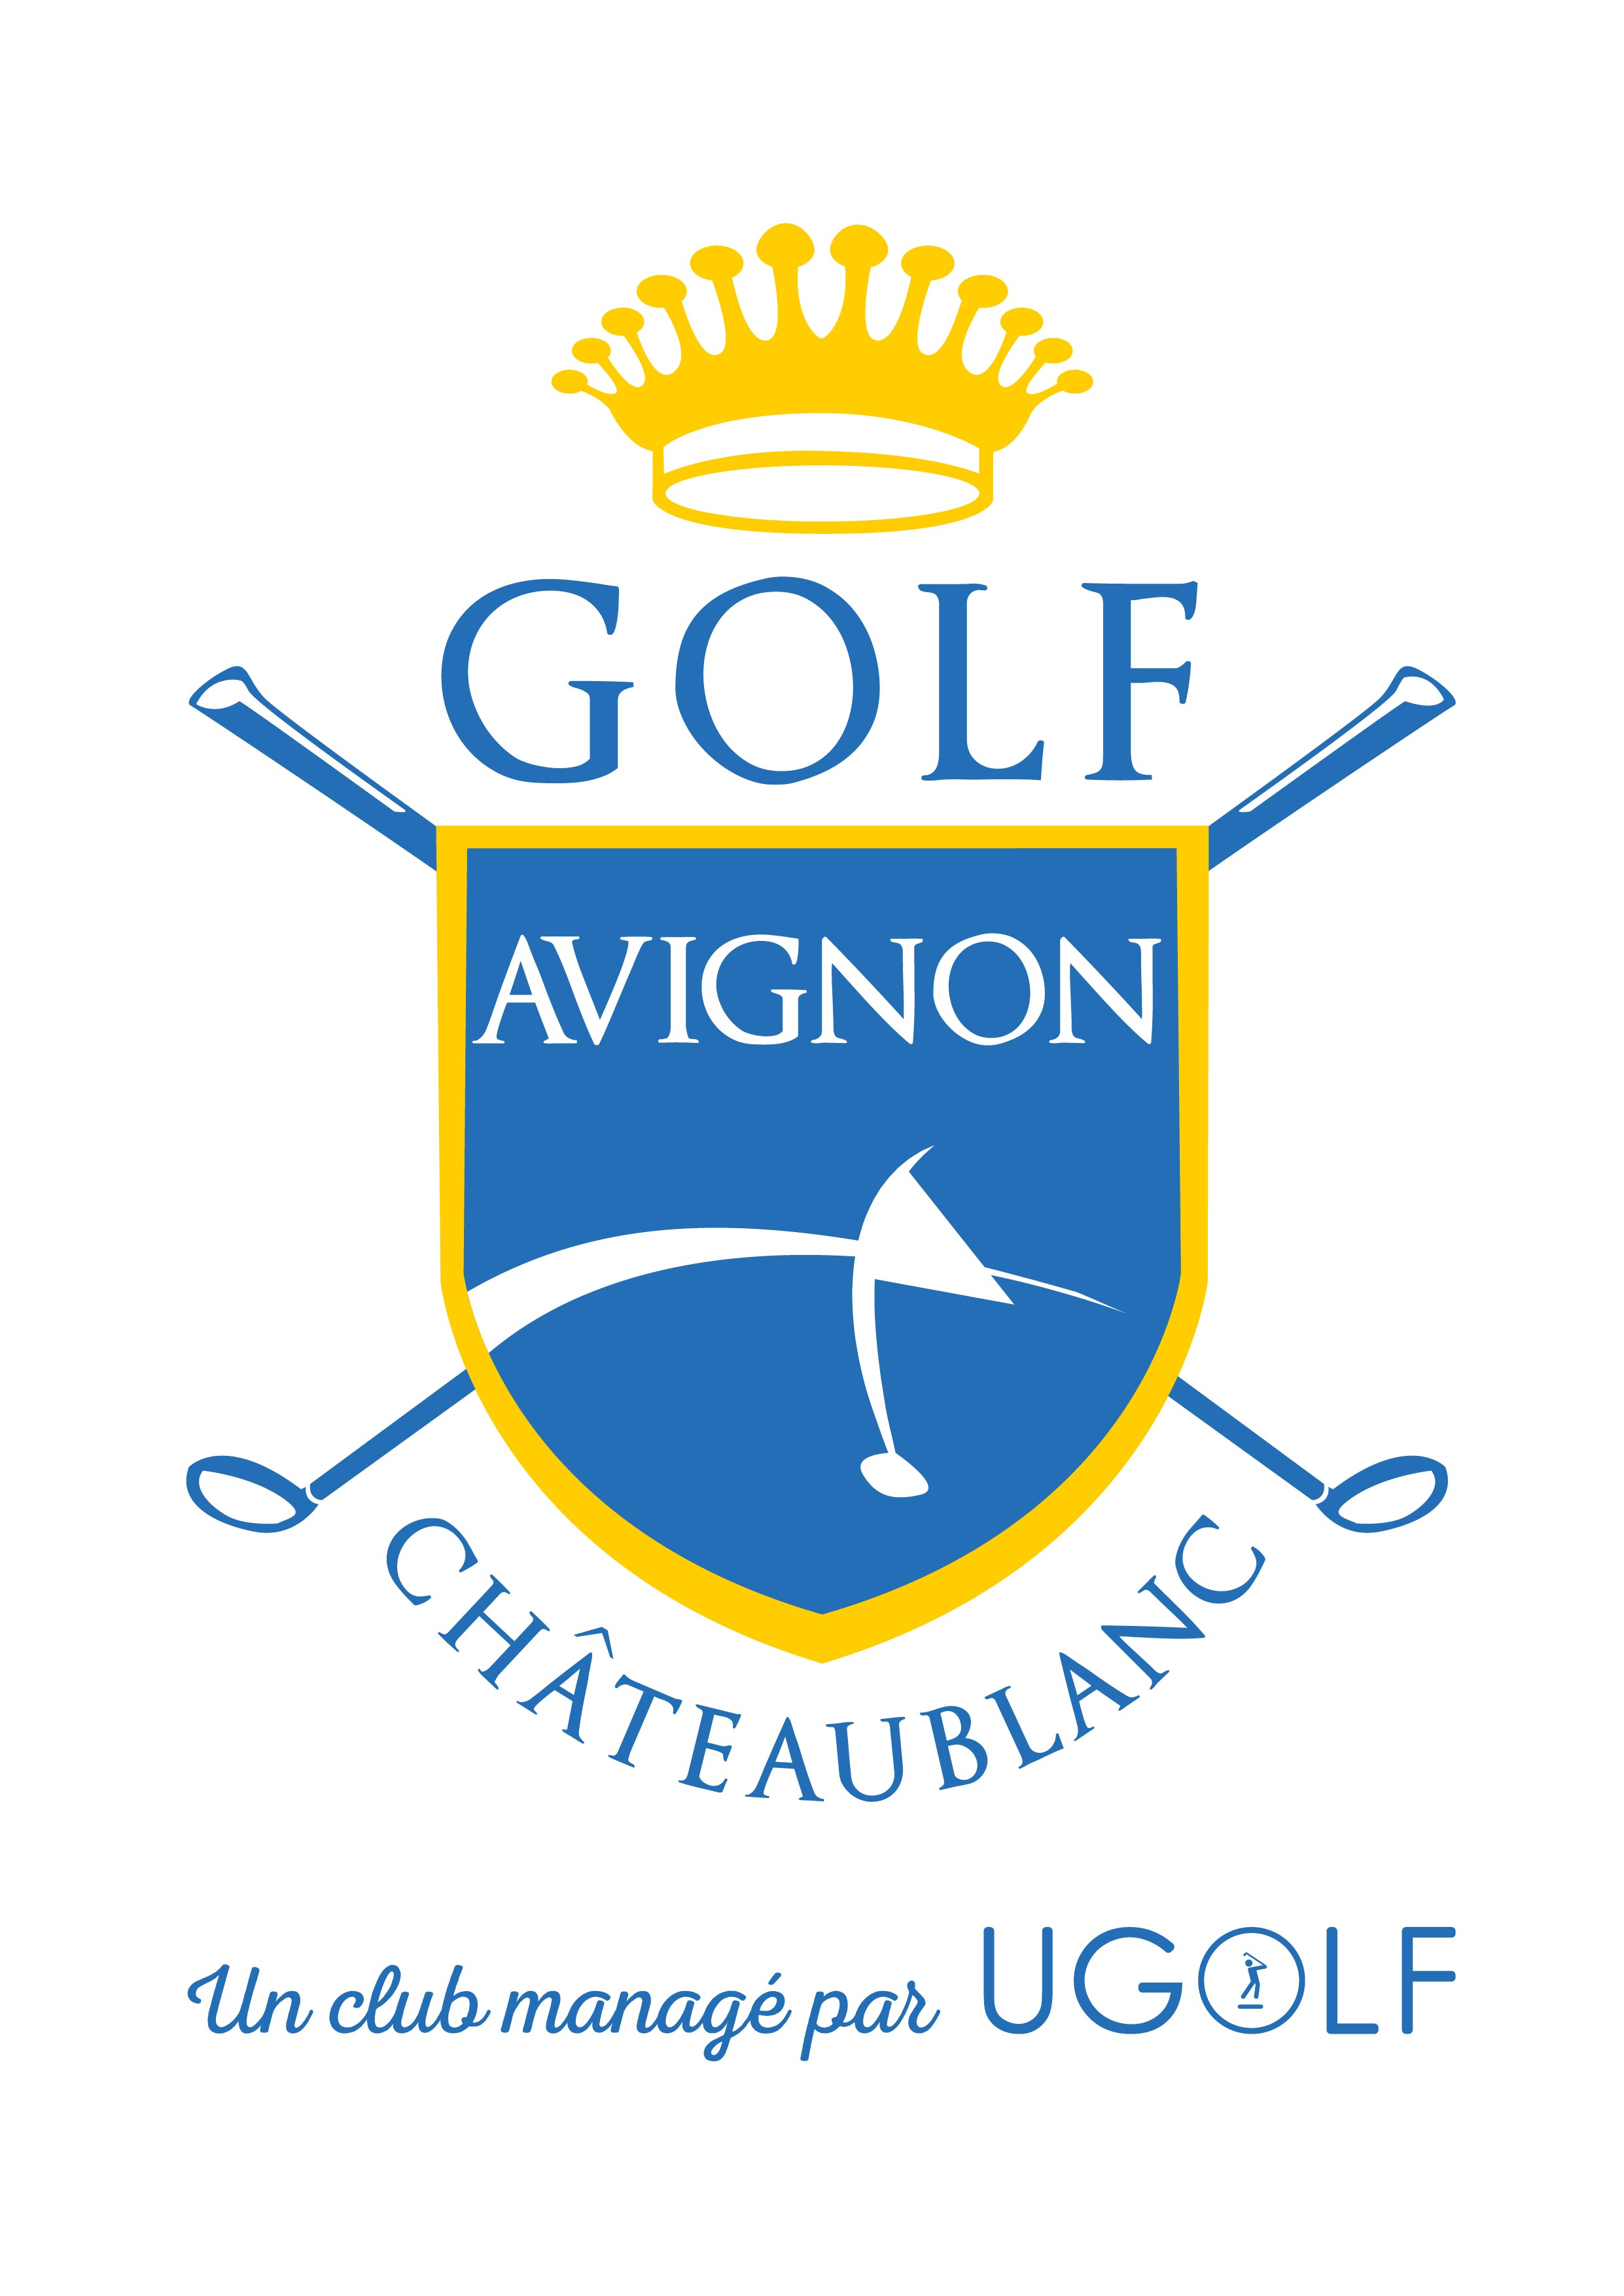 Golf Chateaublanc